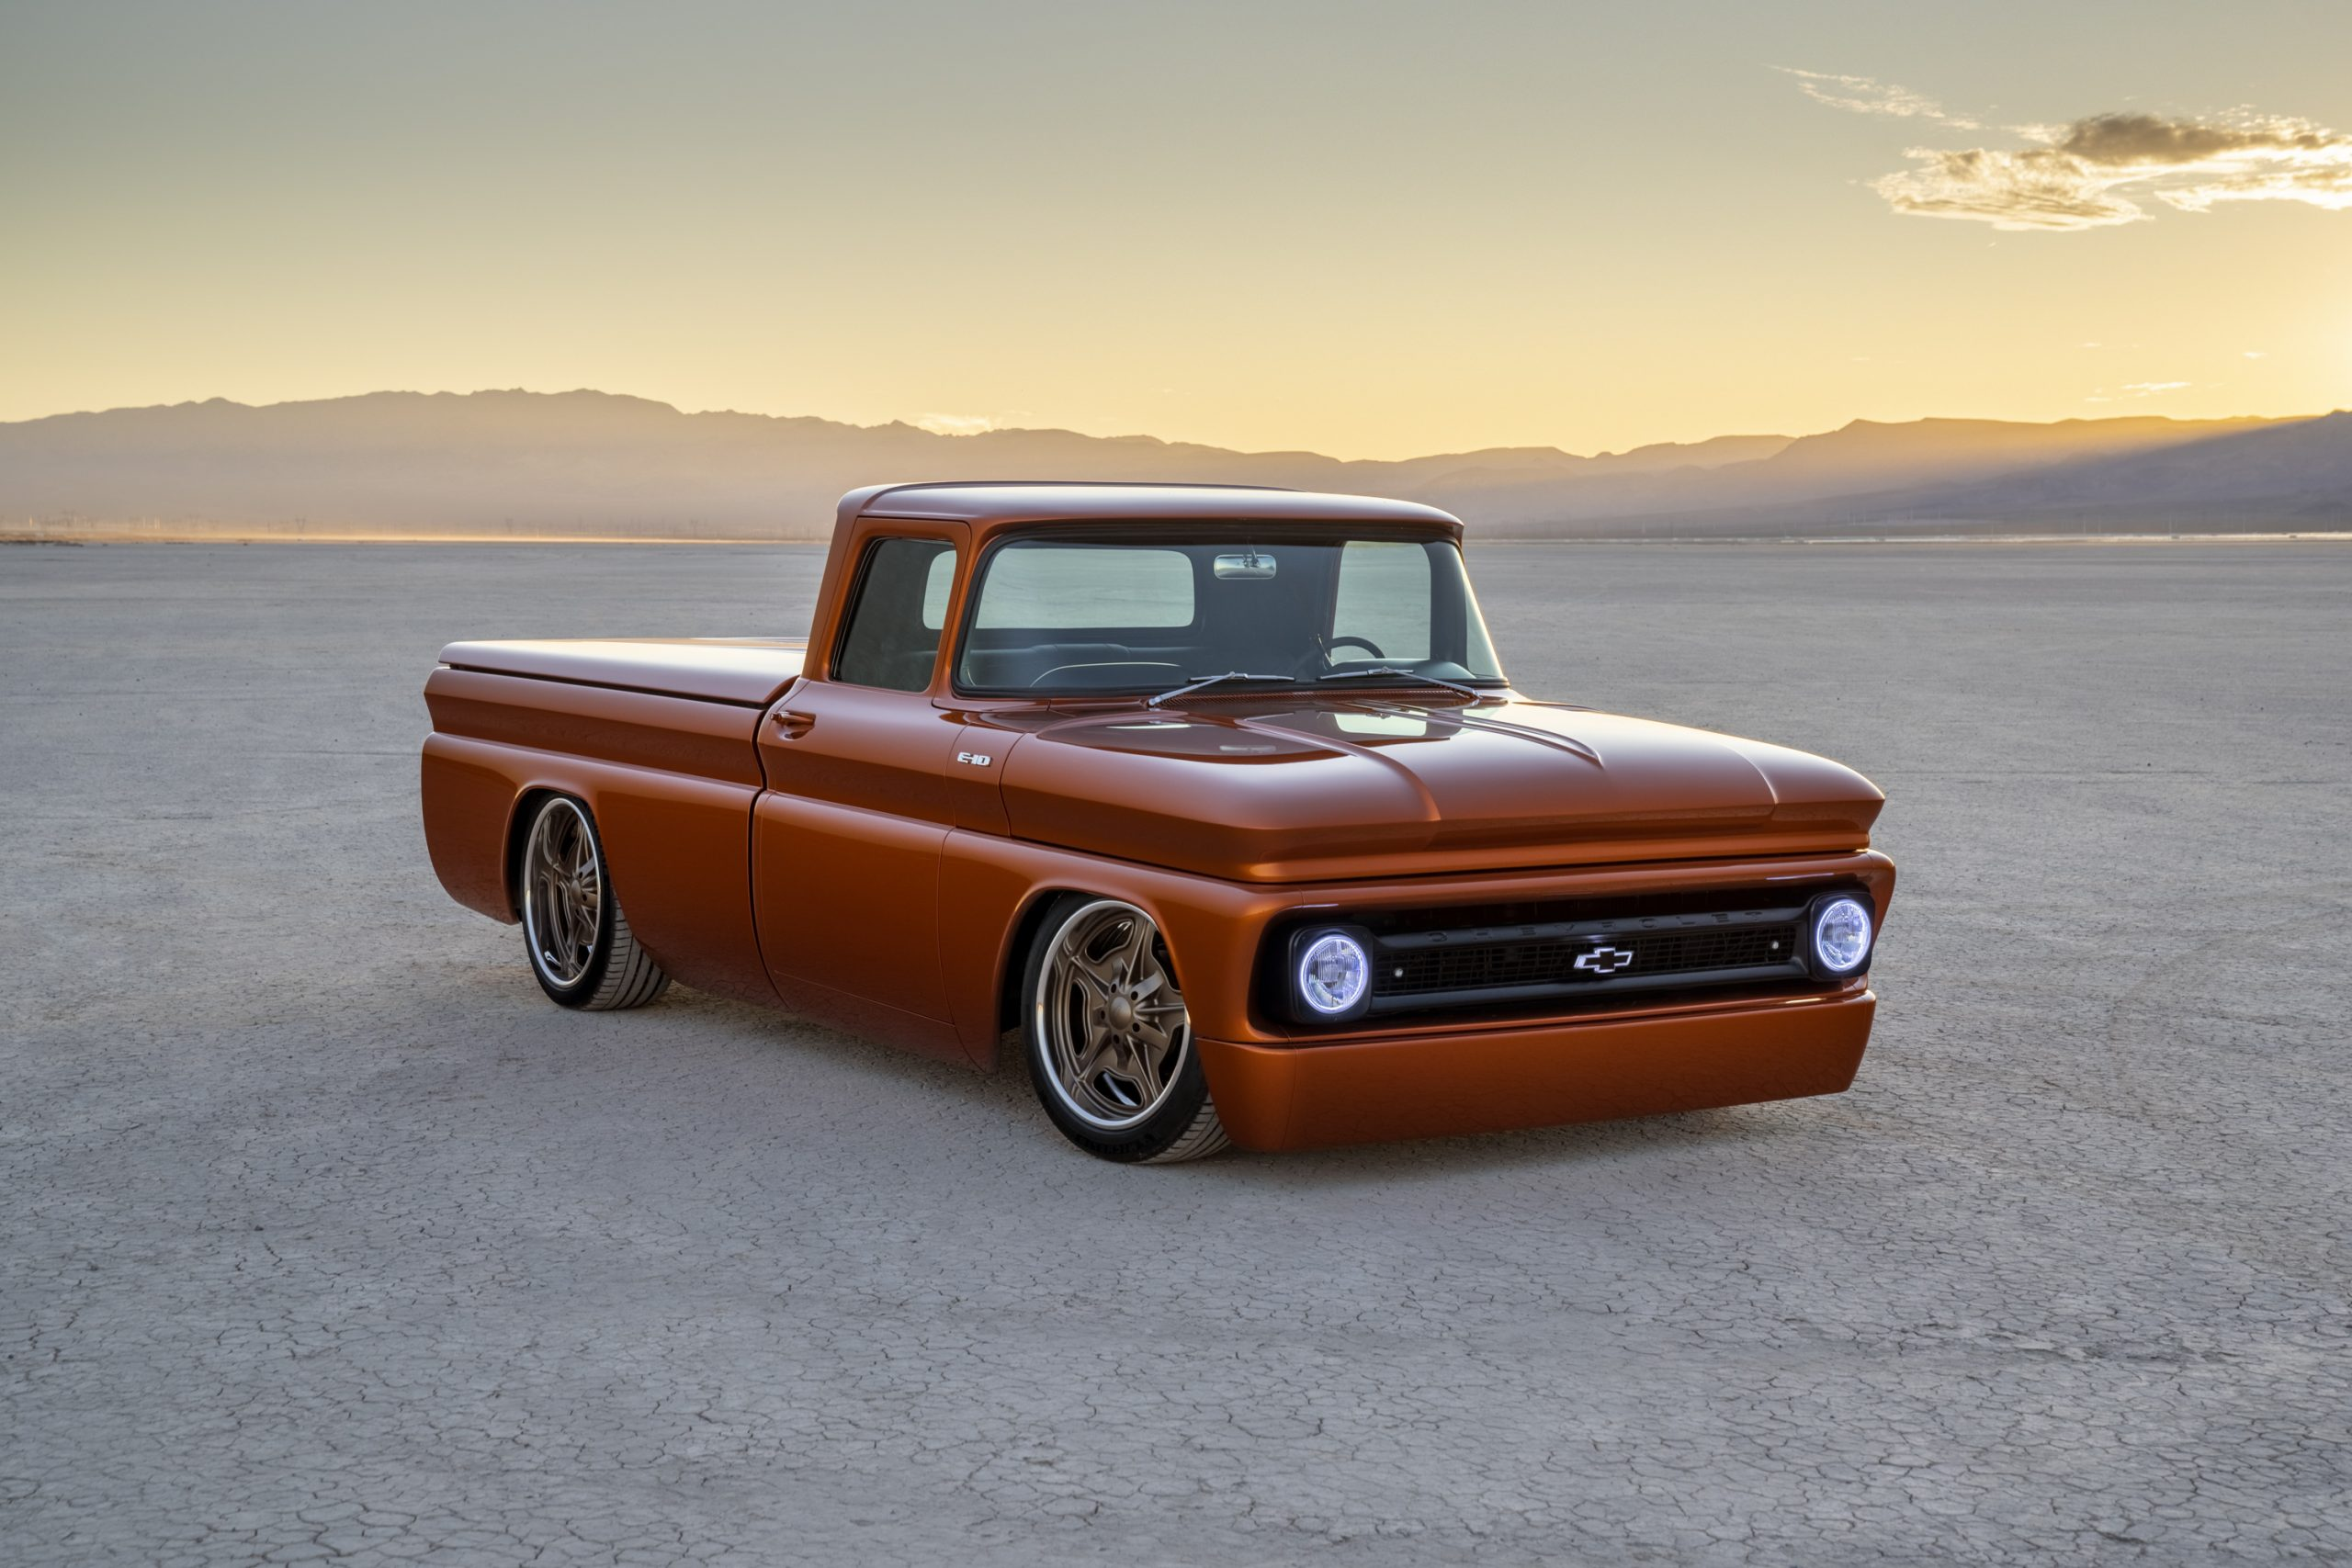 Chevy E-10 Electric Hot-Rod Truck Concept Has A Double Shot 2022 Chevy Camaro Cost, Bolt Pattern, Build